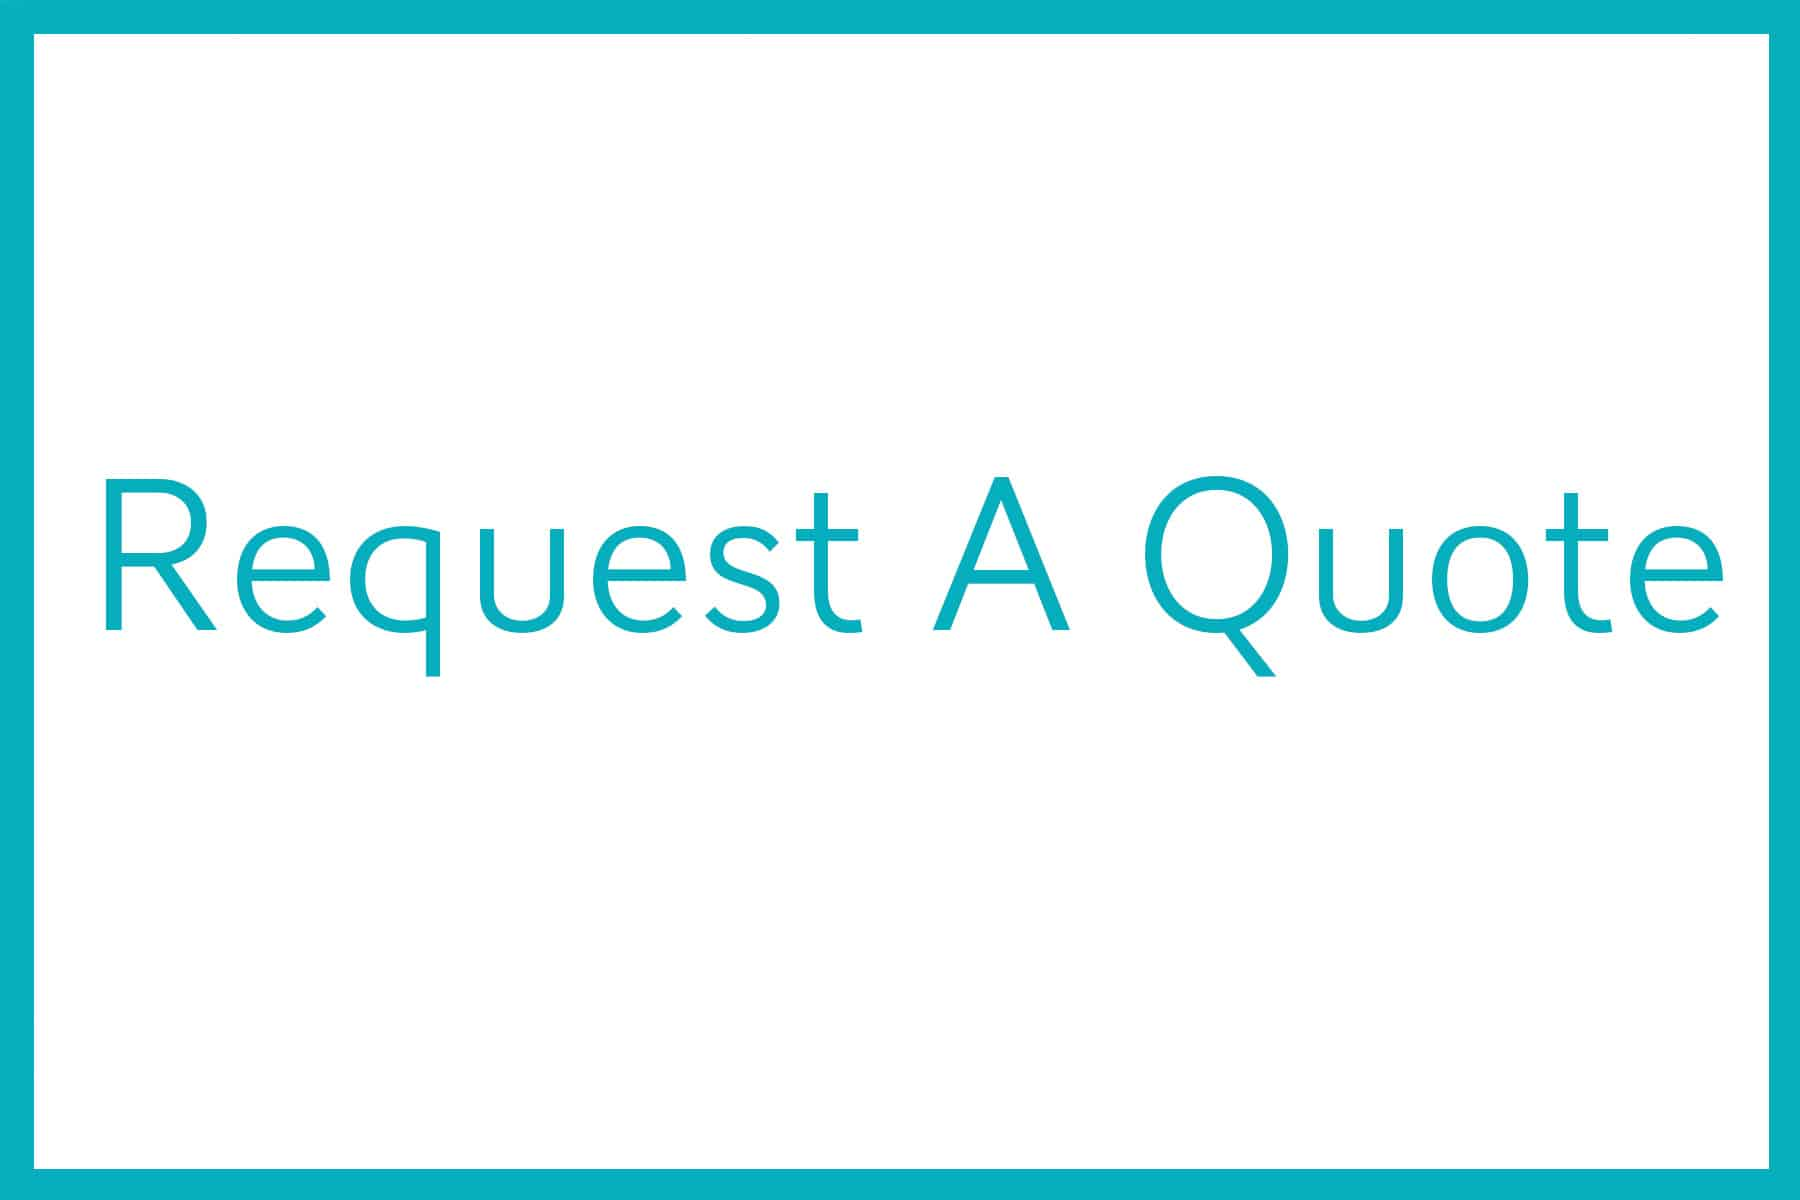 Request A Quote - Video Production Pricing - Provid Films